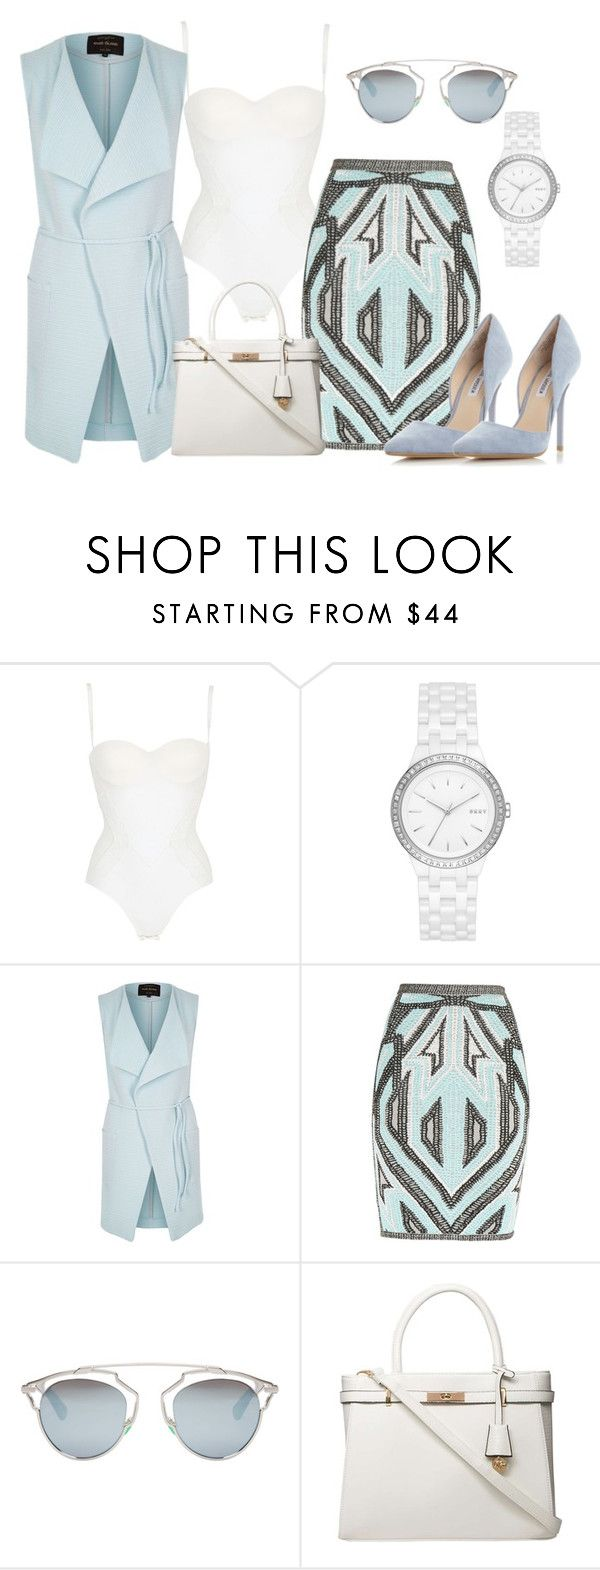 """""""FEELING THE BLUES x 2"""" by samstyles001 on Polyvore featuring La Perla, DKNY, River Island, Hervé Léger, Christian Dior, Dorothy Perkins and Steve Madden"""